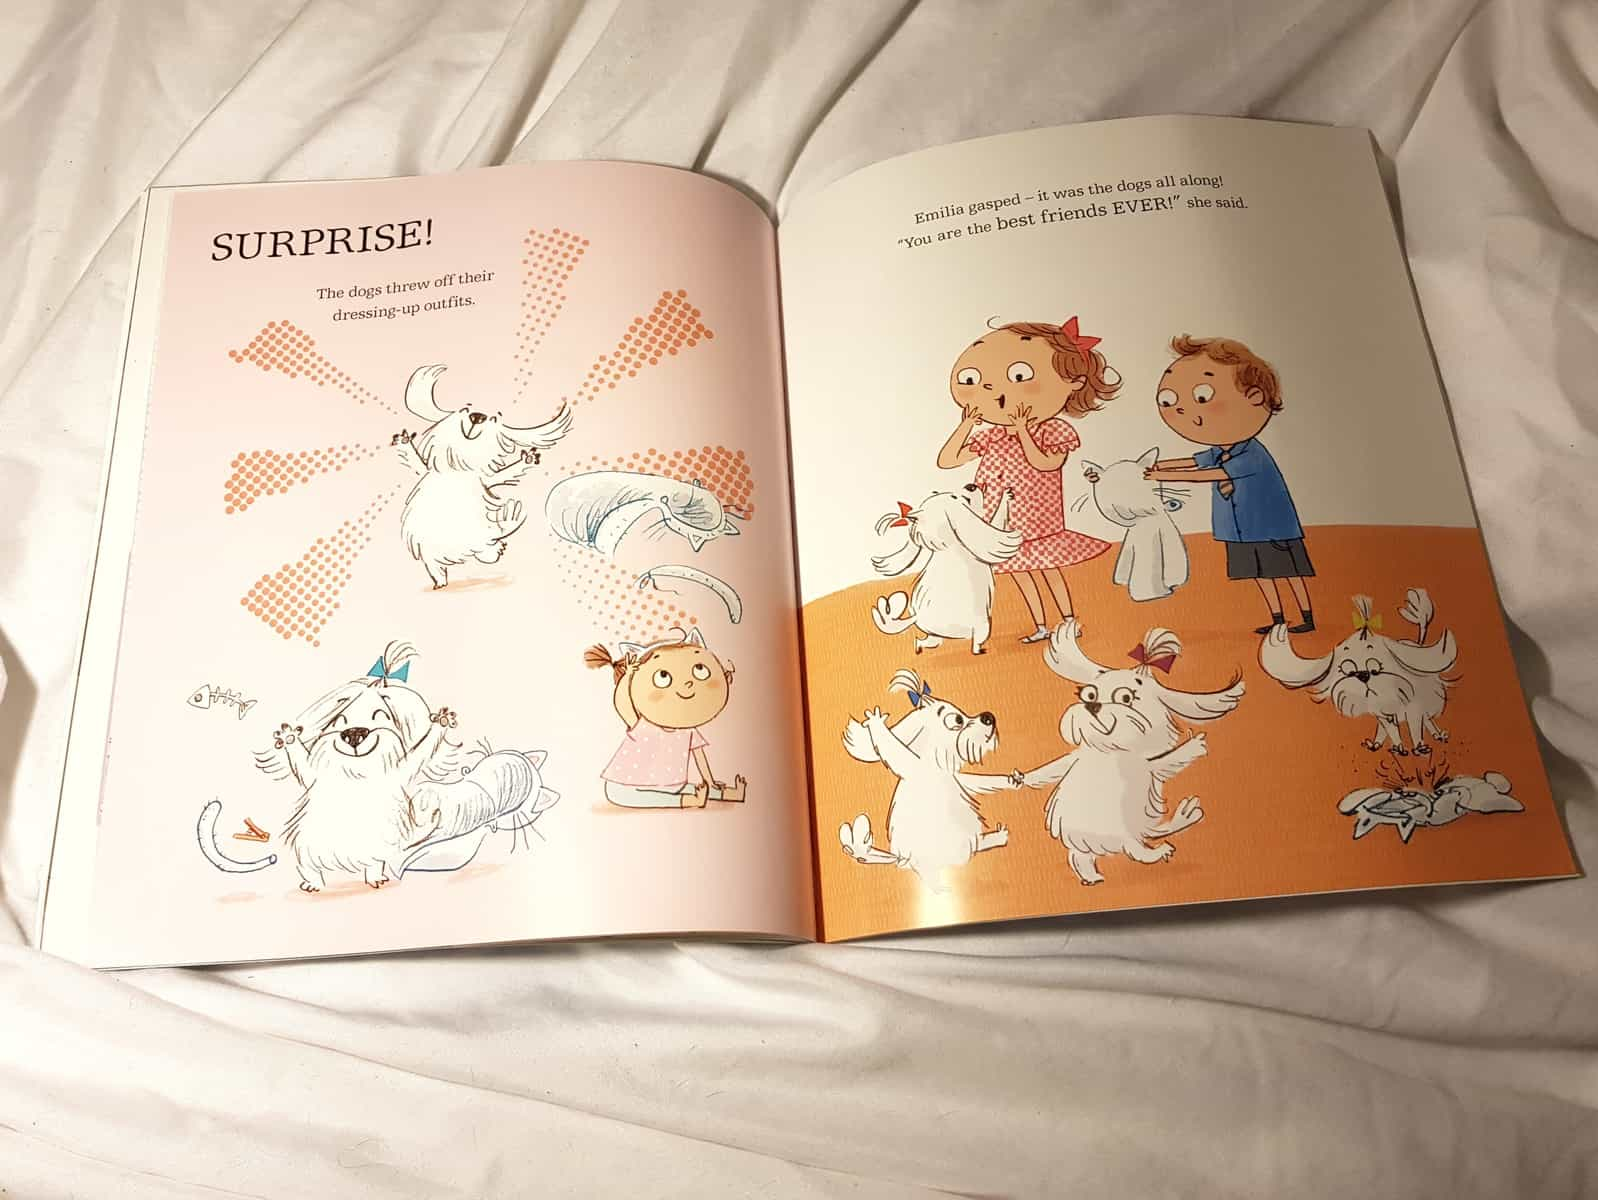 Pages of The Great Cat Nap with dogs removing their fancy dress clothing and shouting surprise